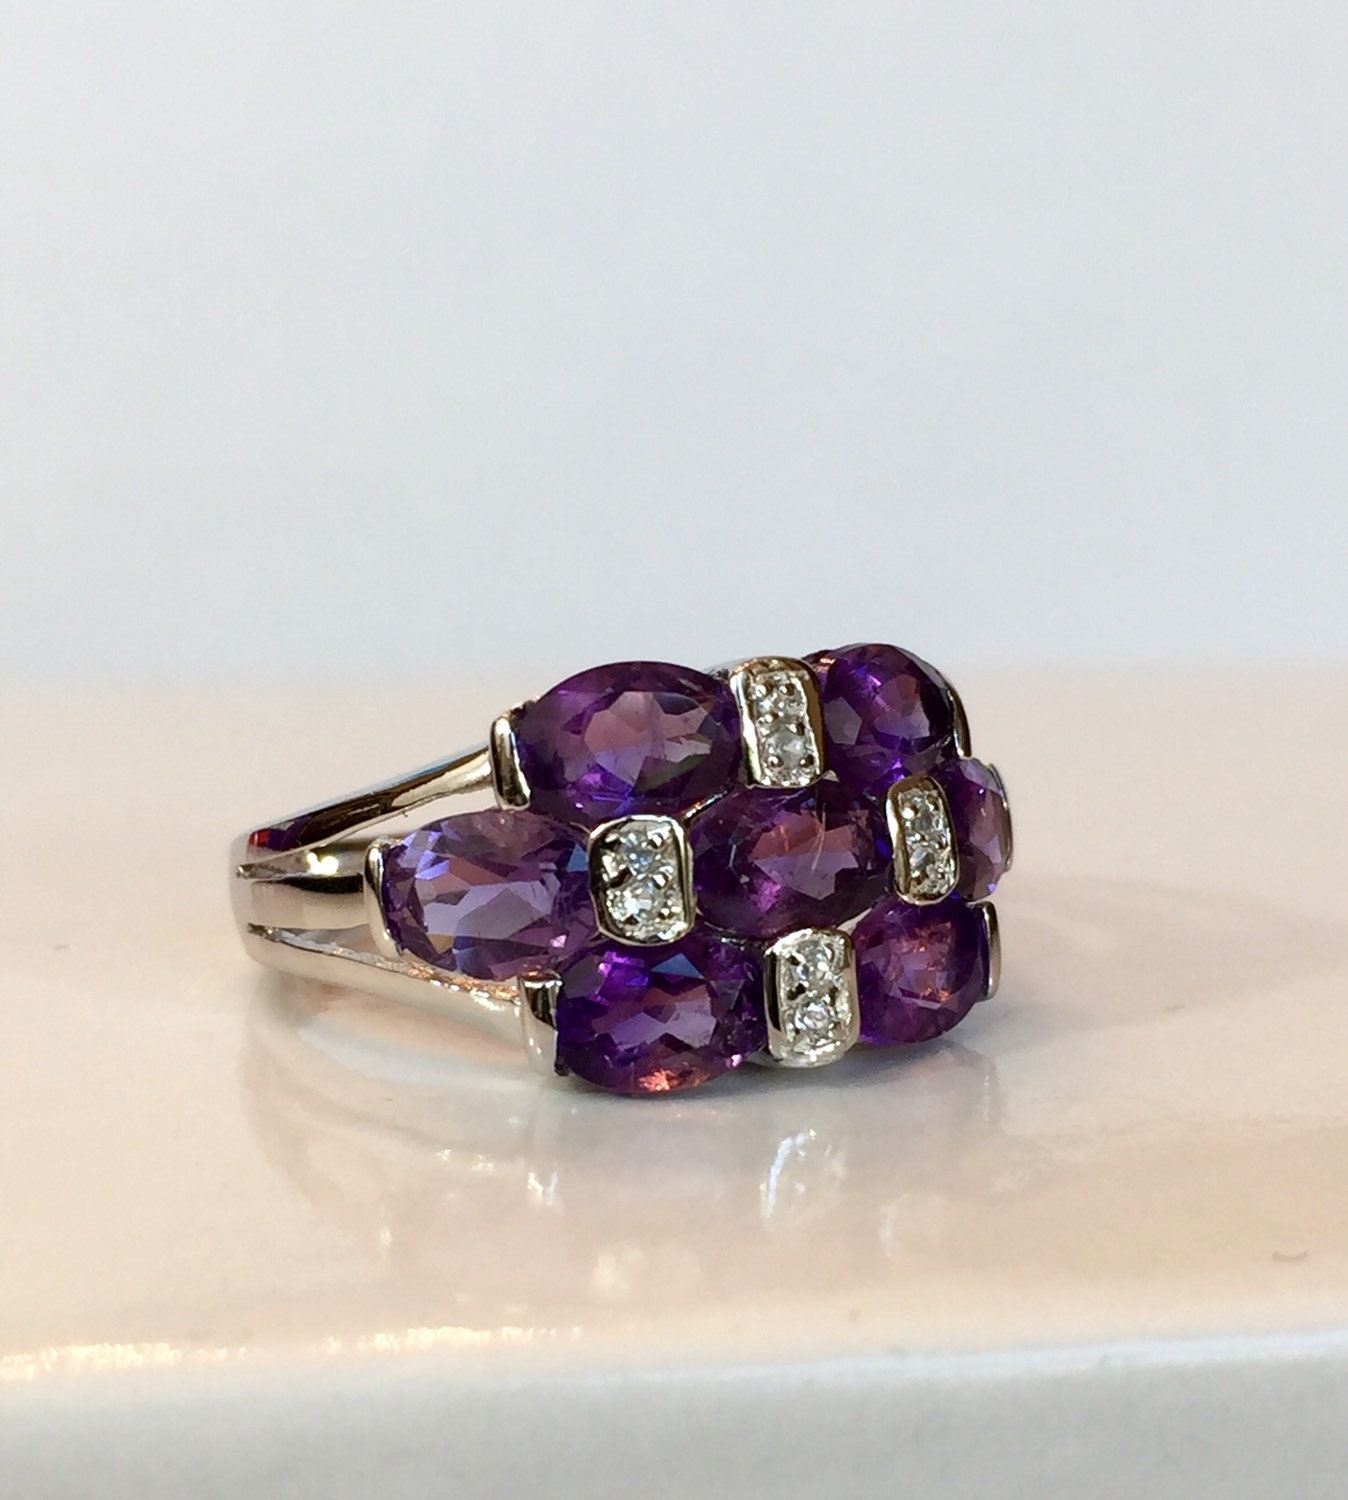 amethyst ring vintage - photo #10